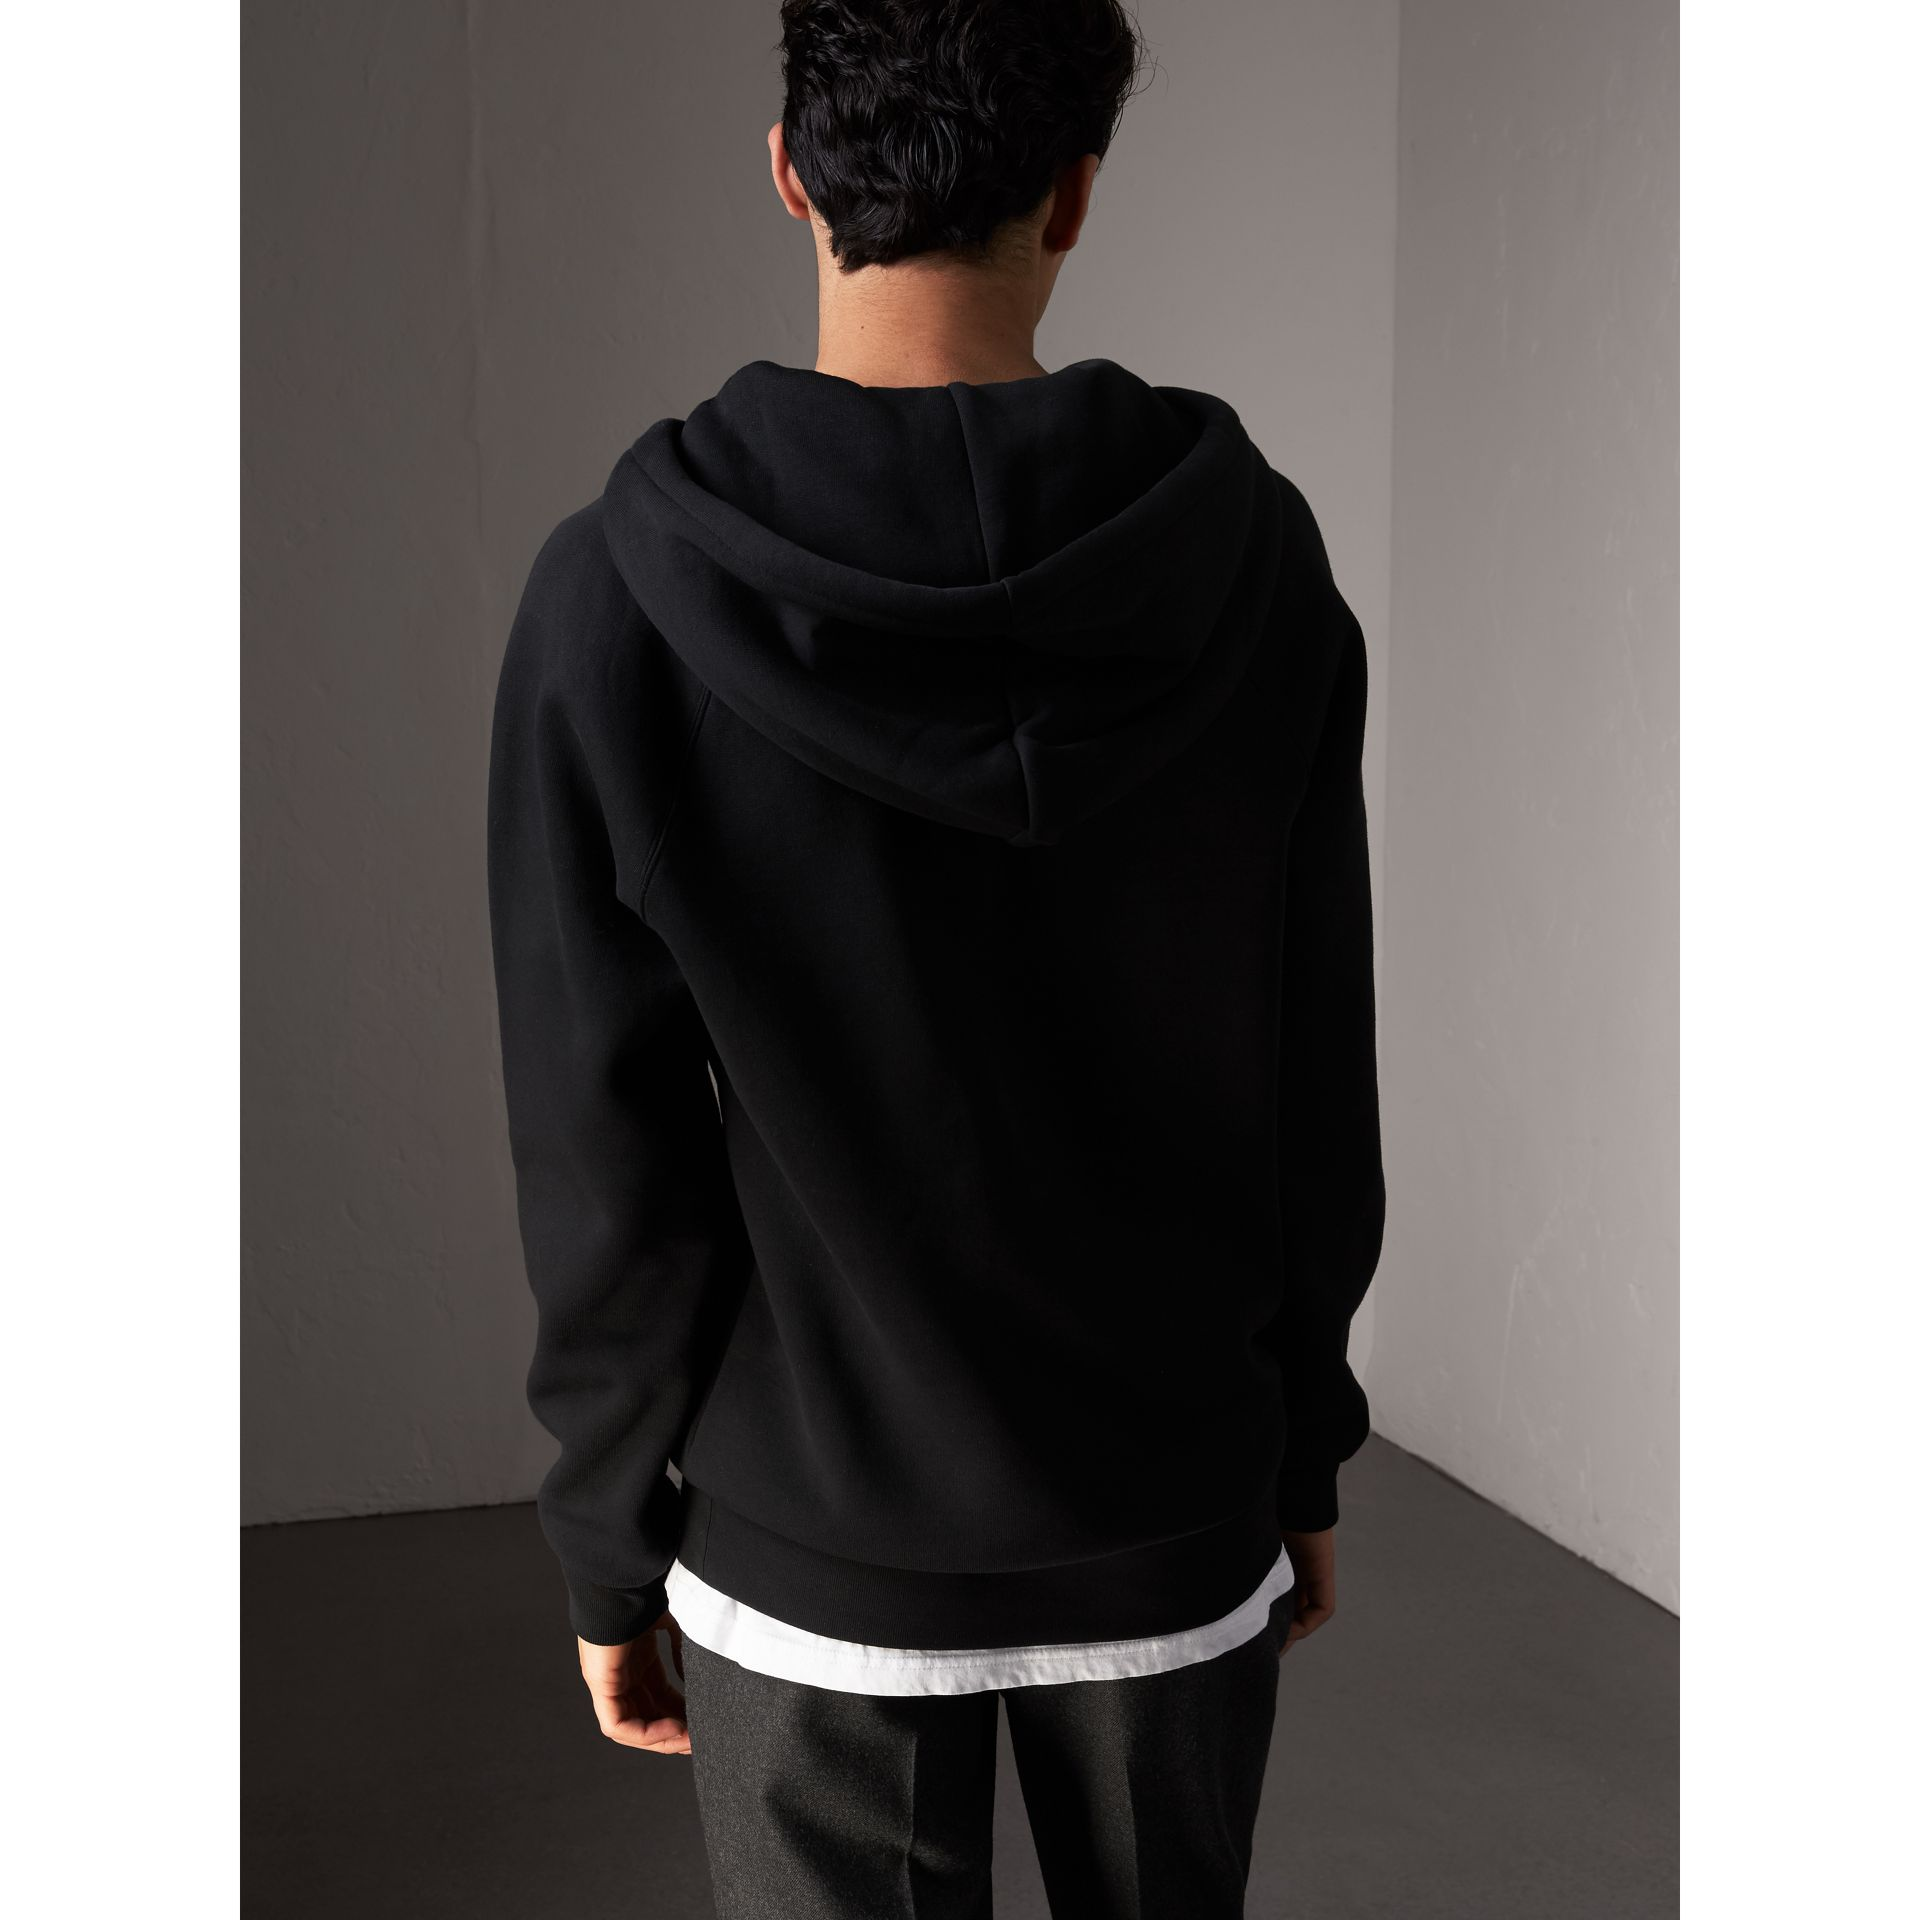 Embroidered Hooded Sweatshirt in Black - Men | Burberry United States - gallery image 2